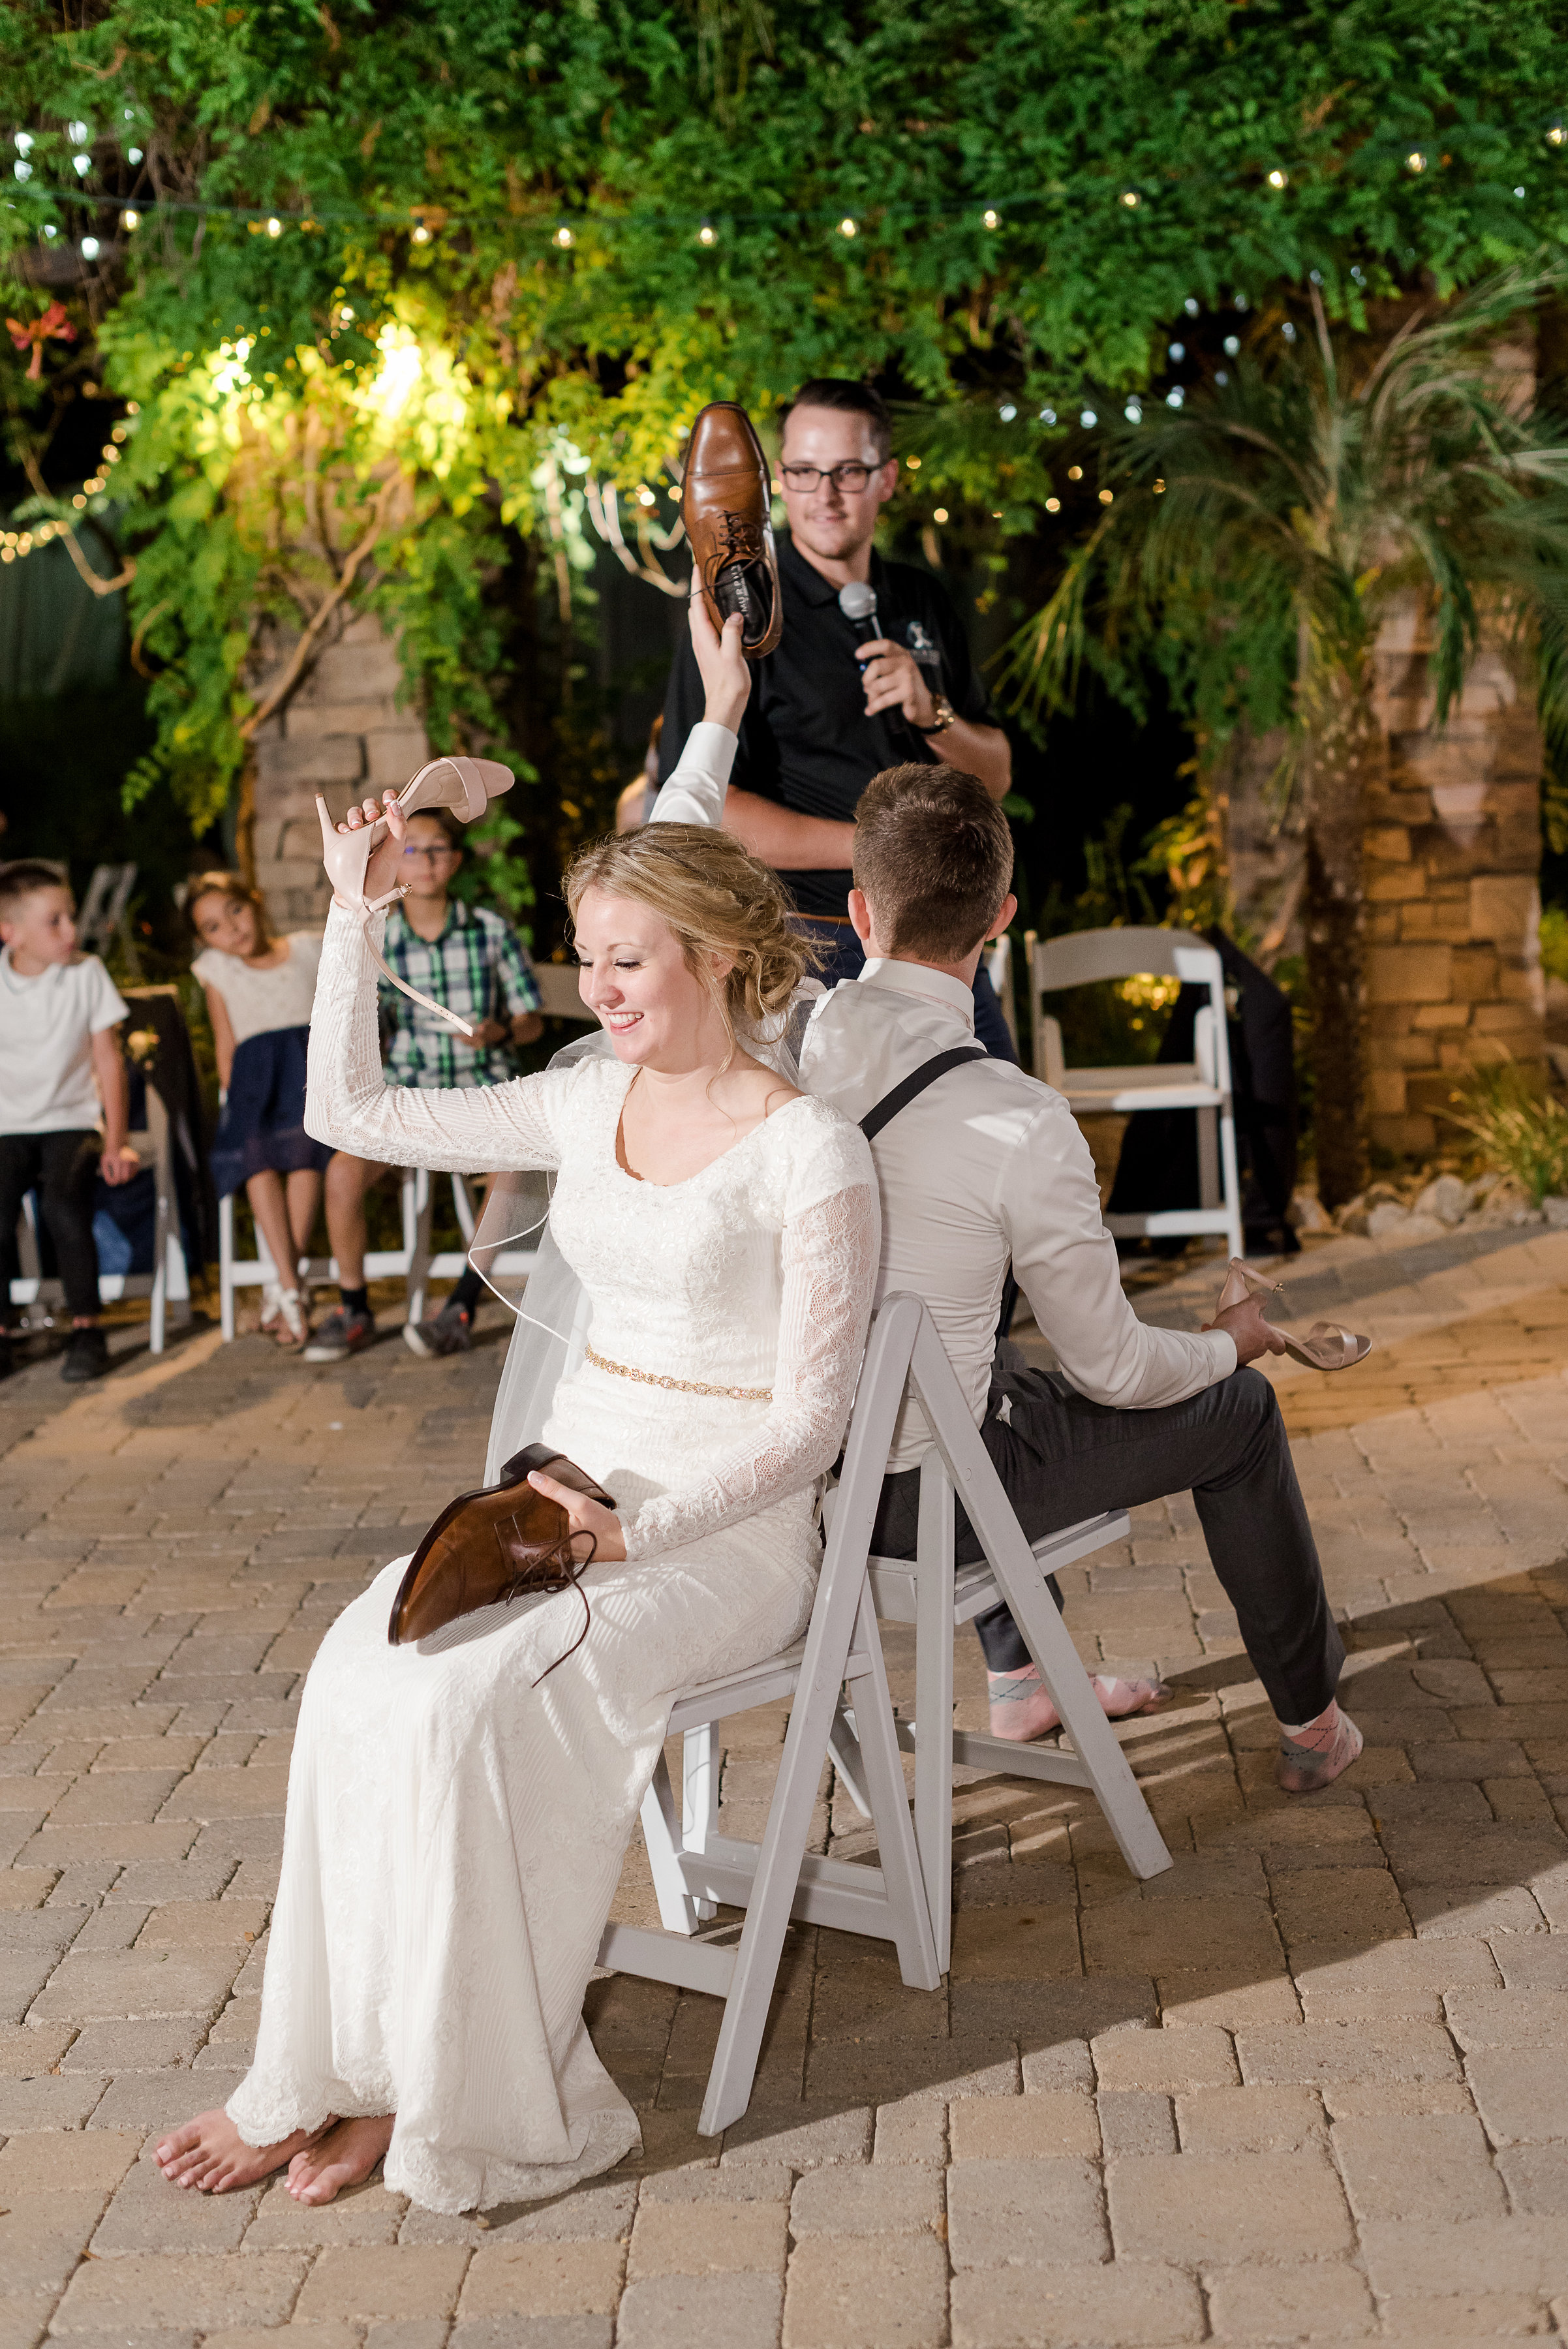 Wedding DJ Services in Arizona